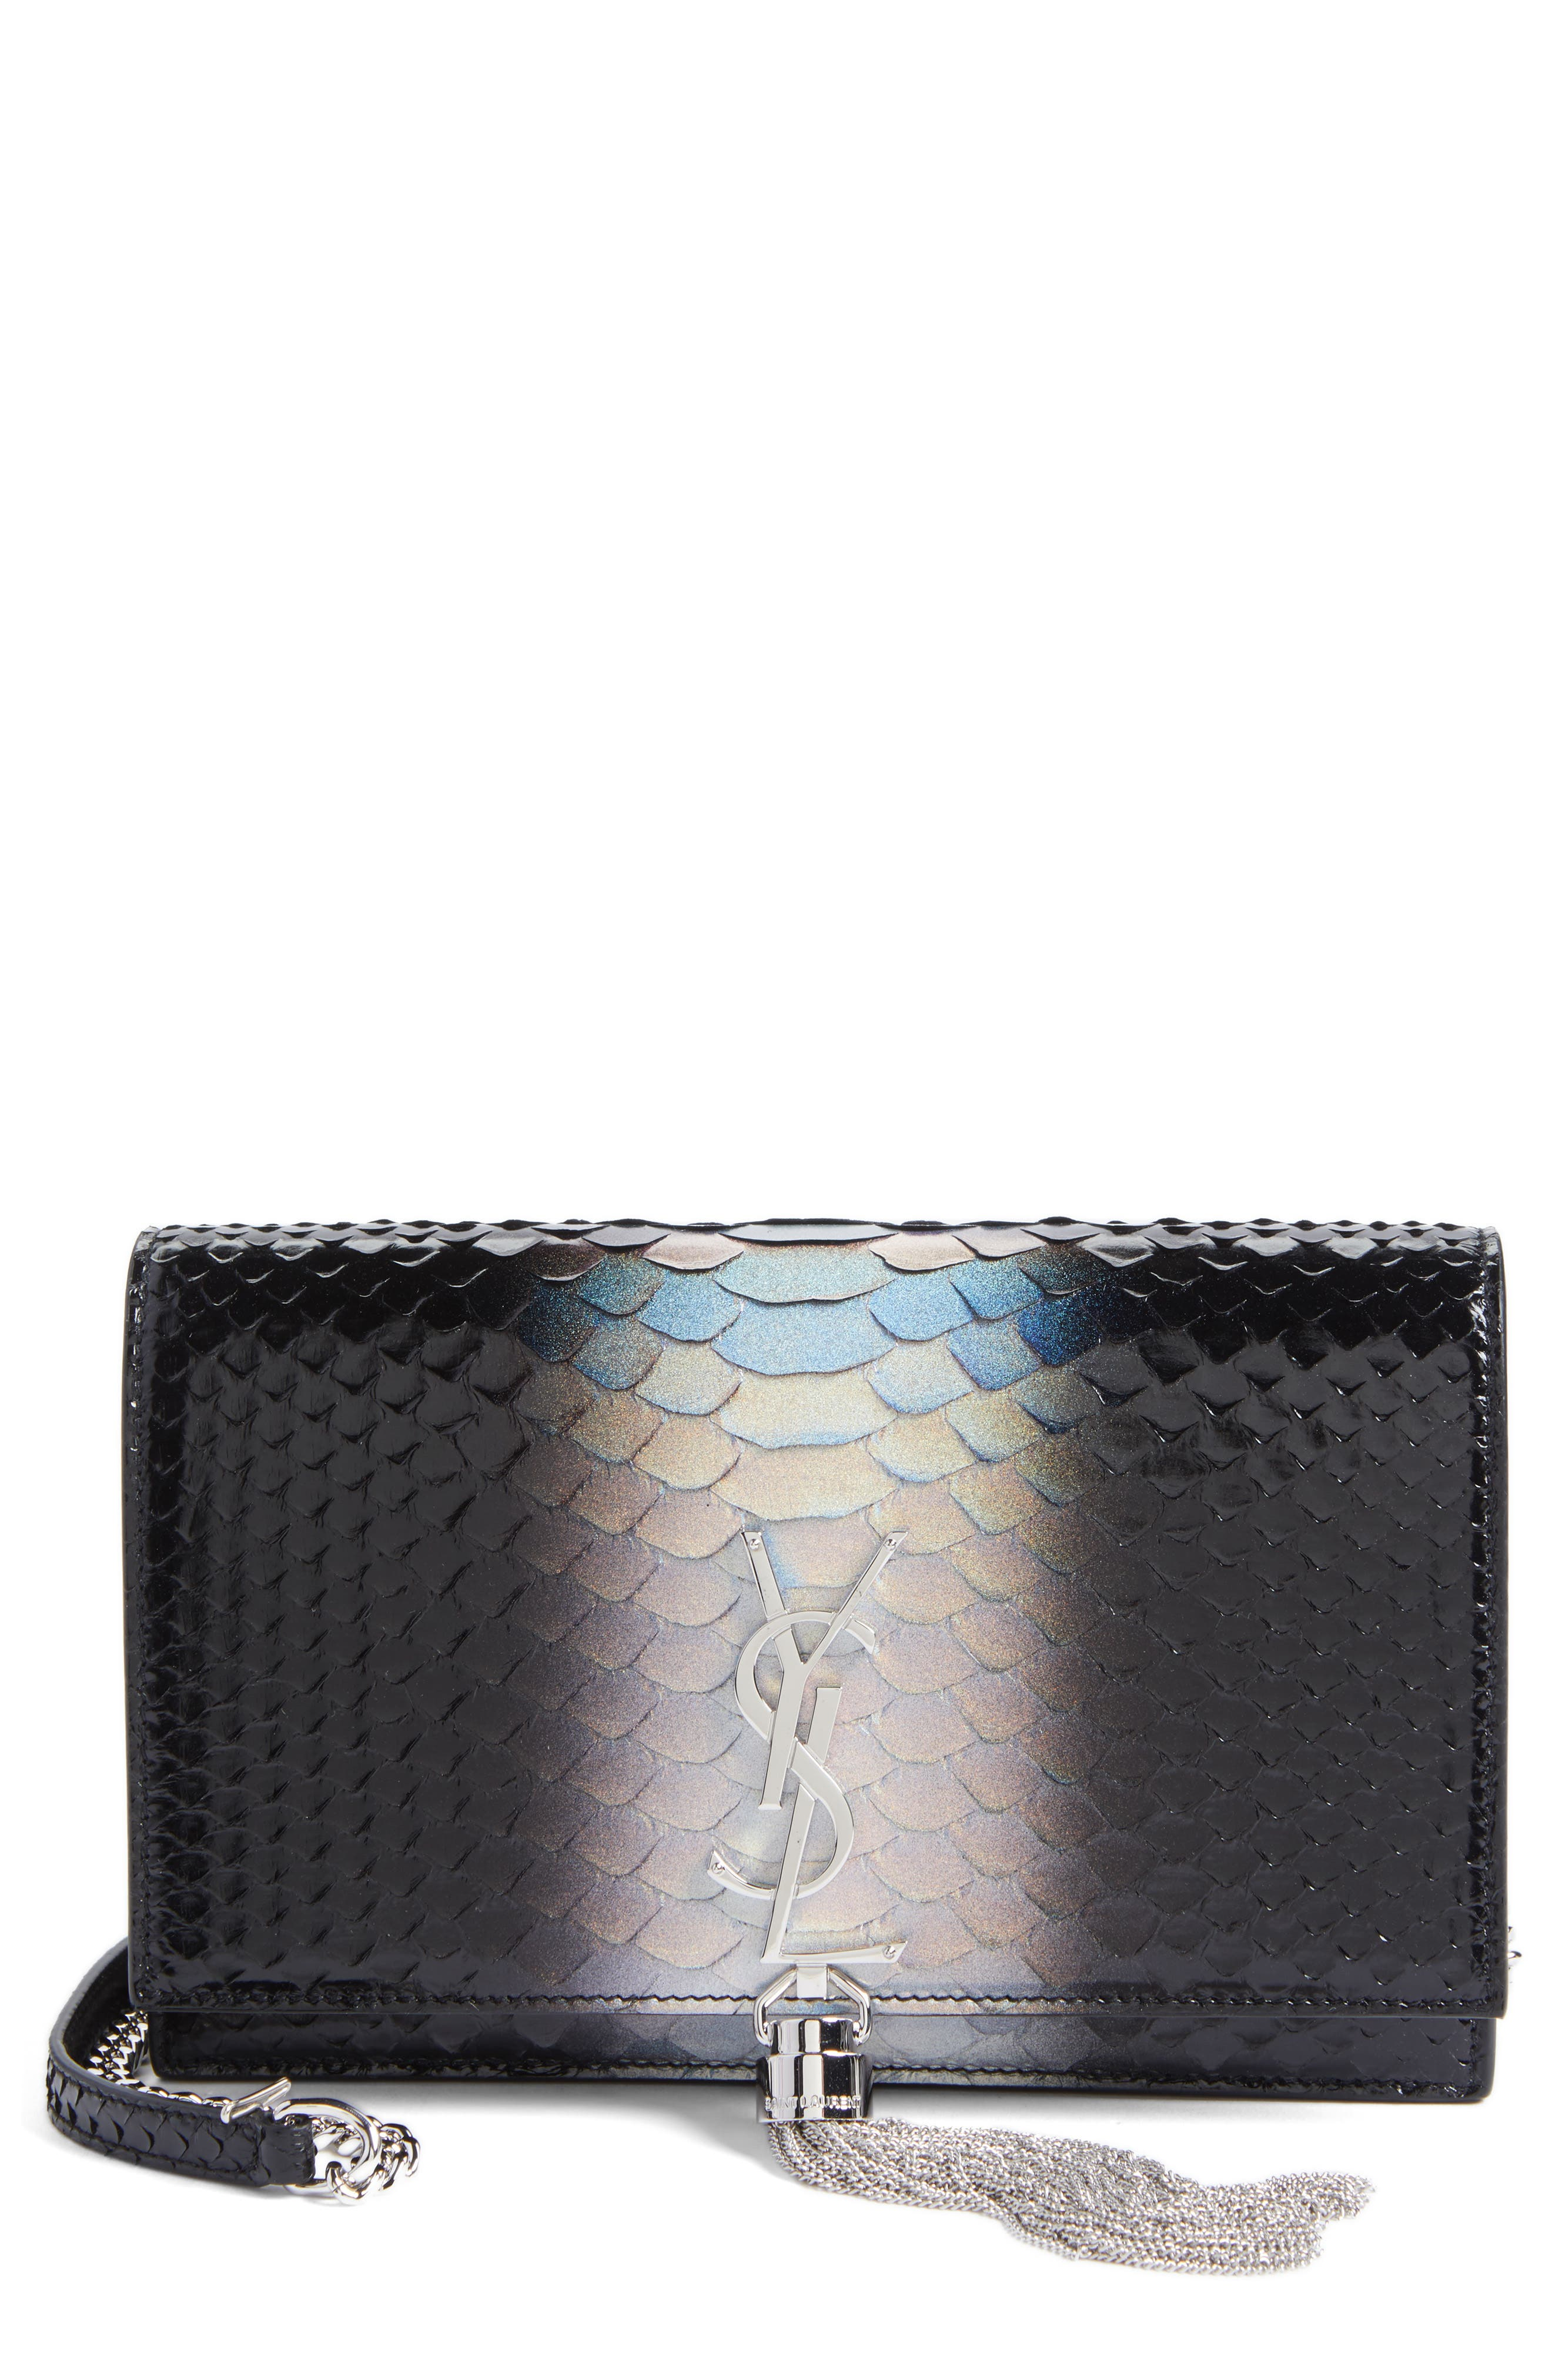 Saint Laurent Kate Dégradé Genuine Python Crossbody Bag